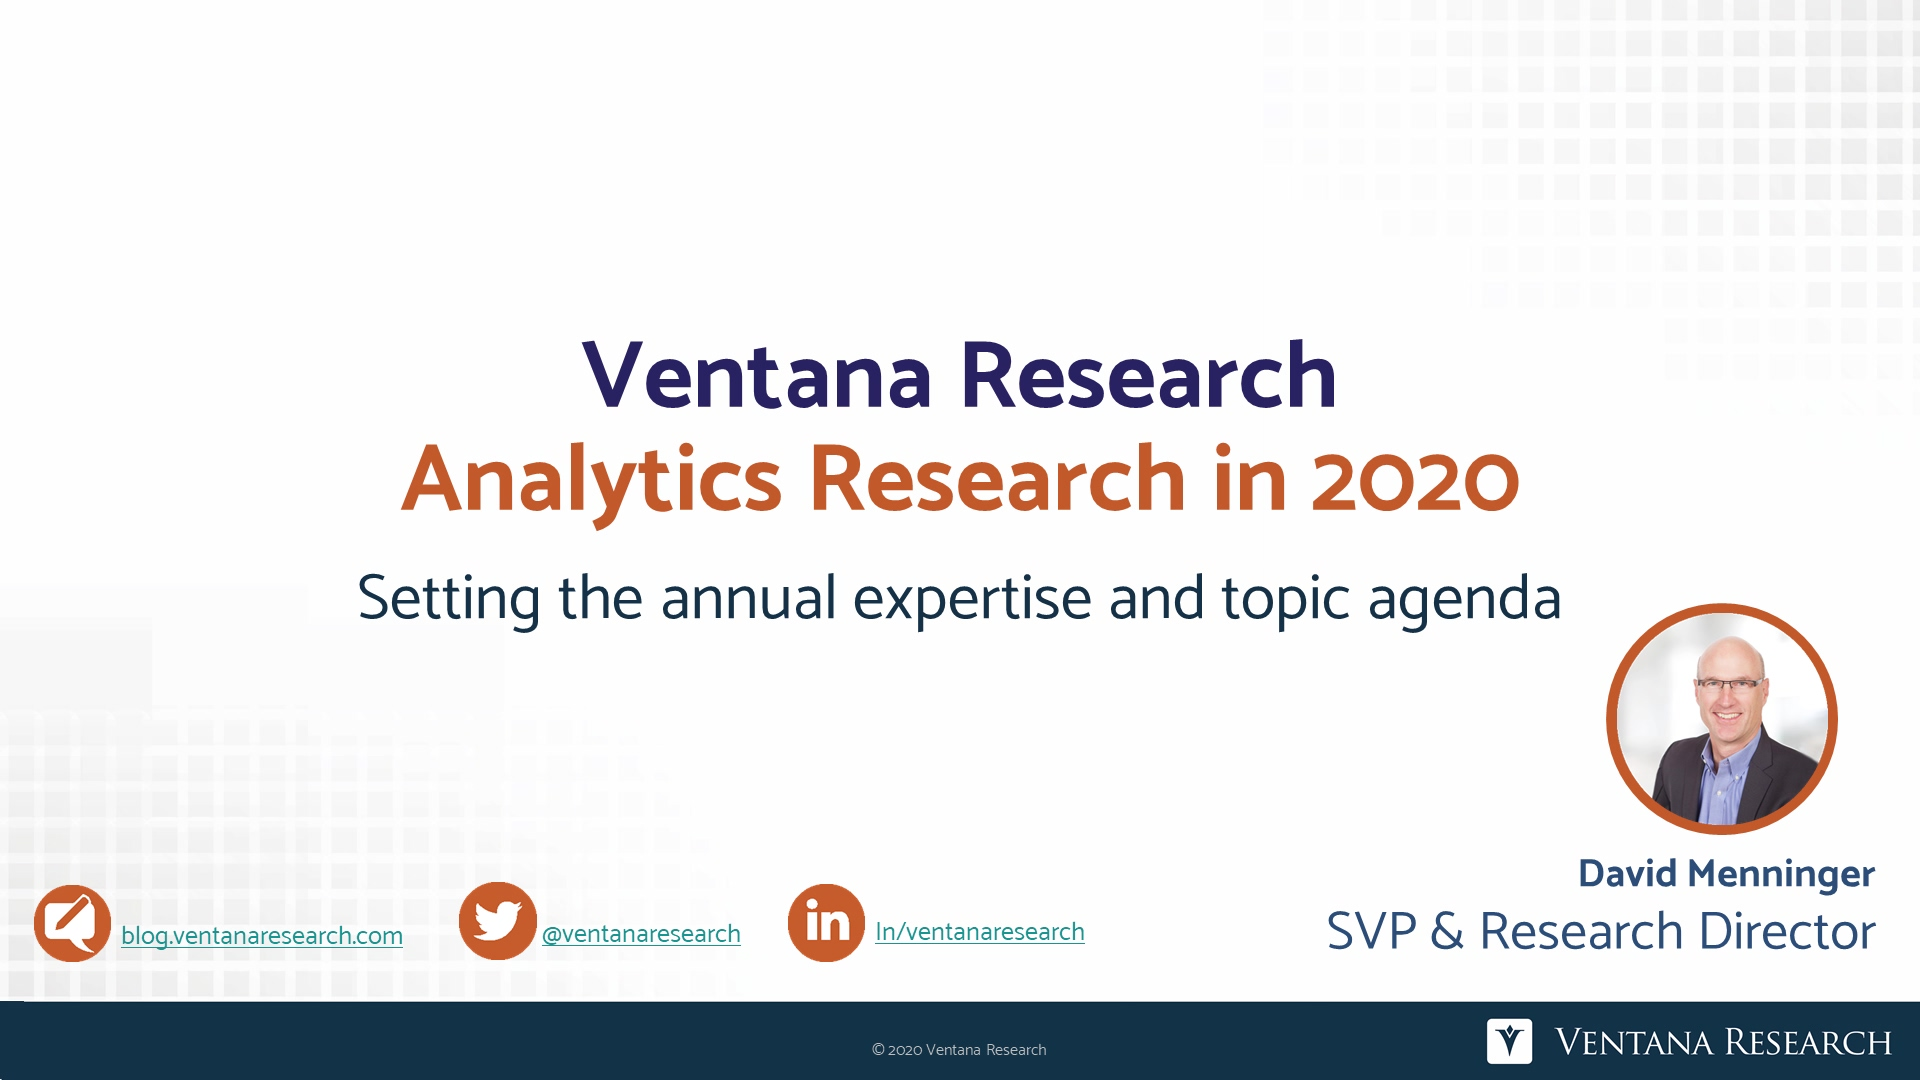 Ventana_Research_2020_Analytics_Research_Agenda